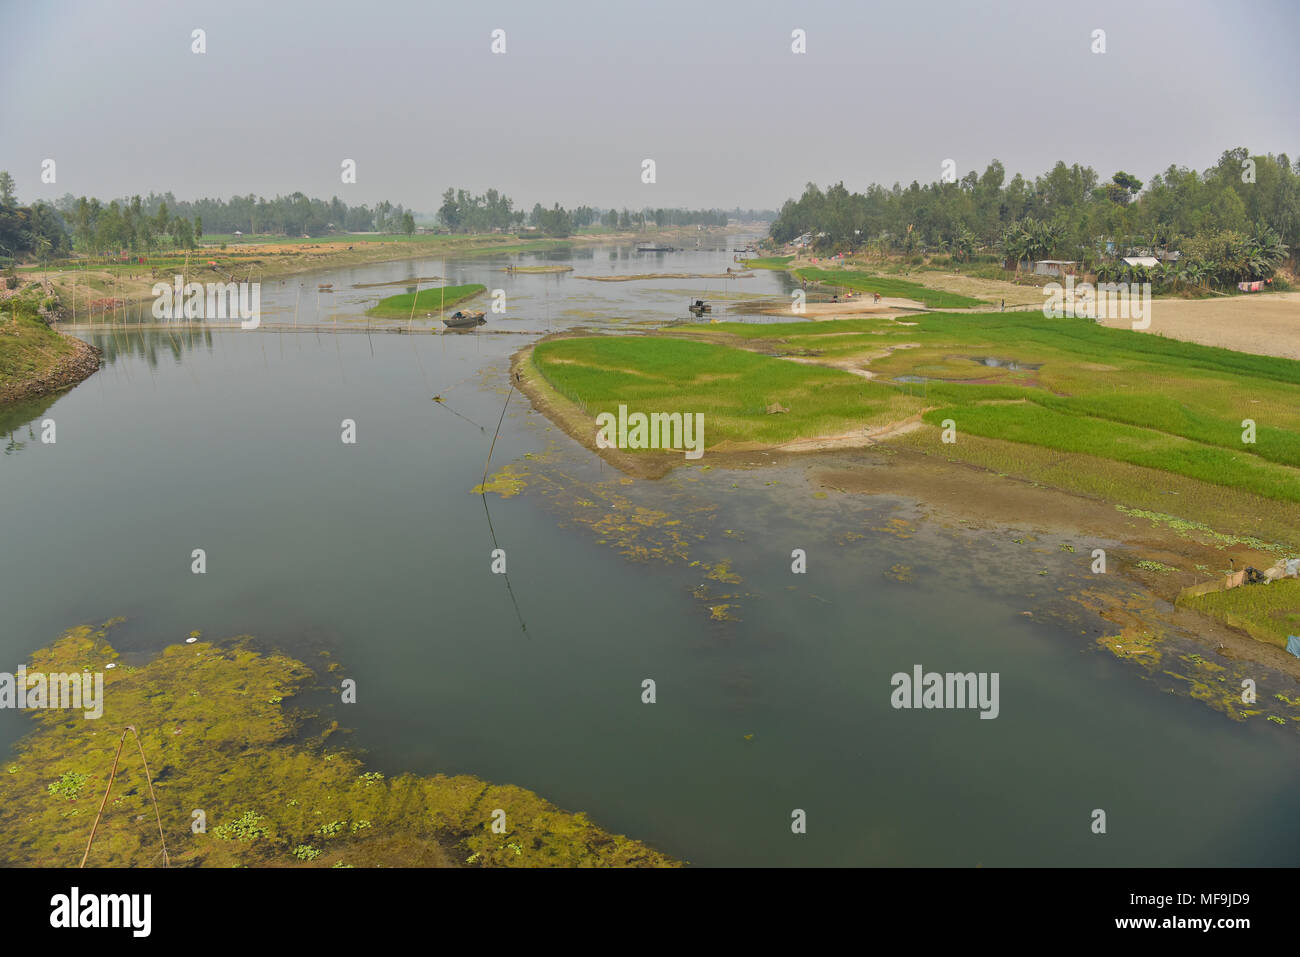 Bogra, Bangladesh - February 28, 2017: The Bangali River is embracing a slow death due to lack of dredging and/or as a consequence of human encroachme Stock Photo